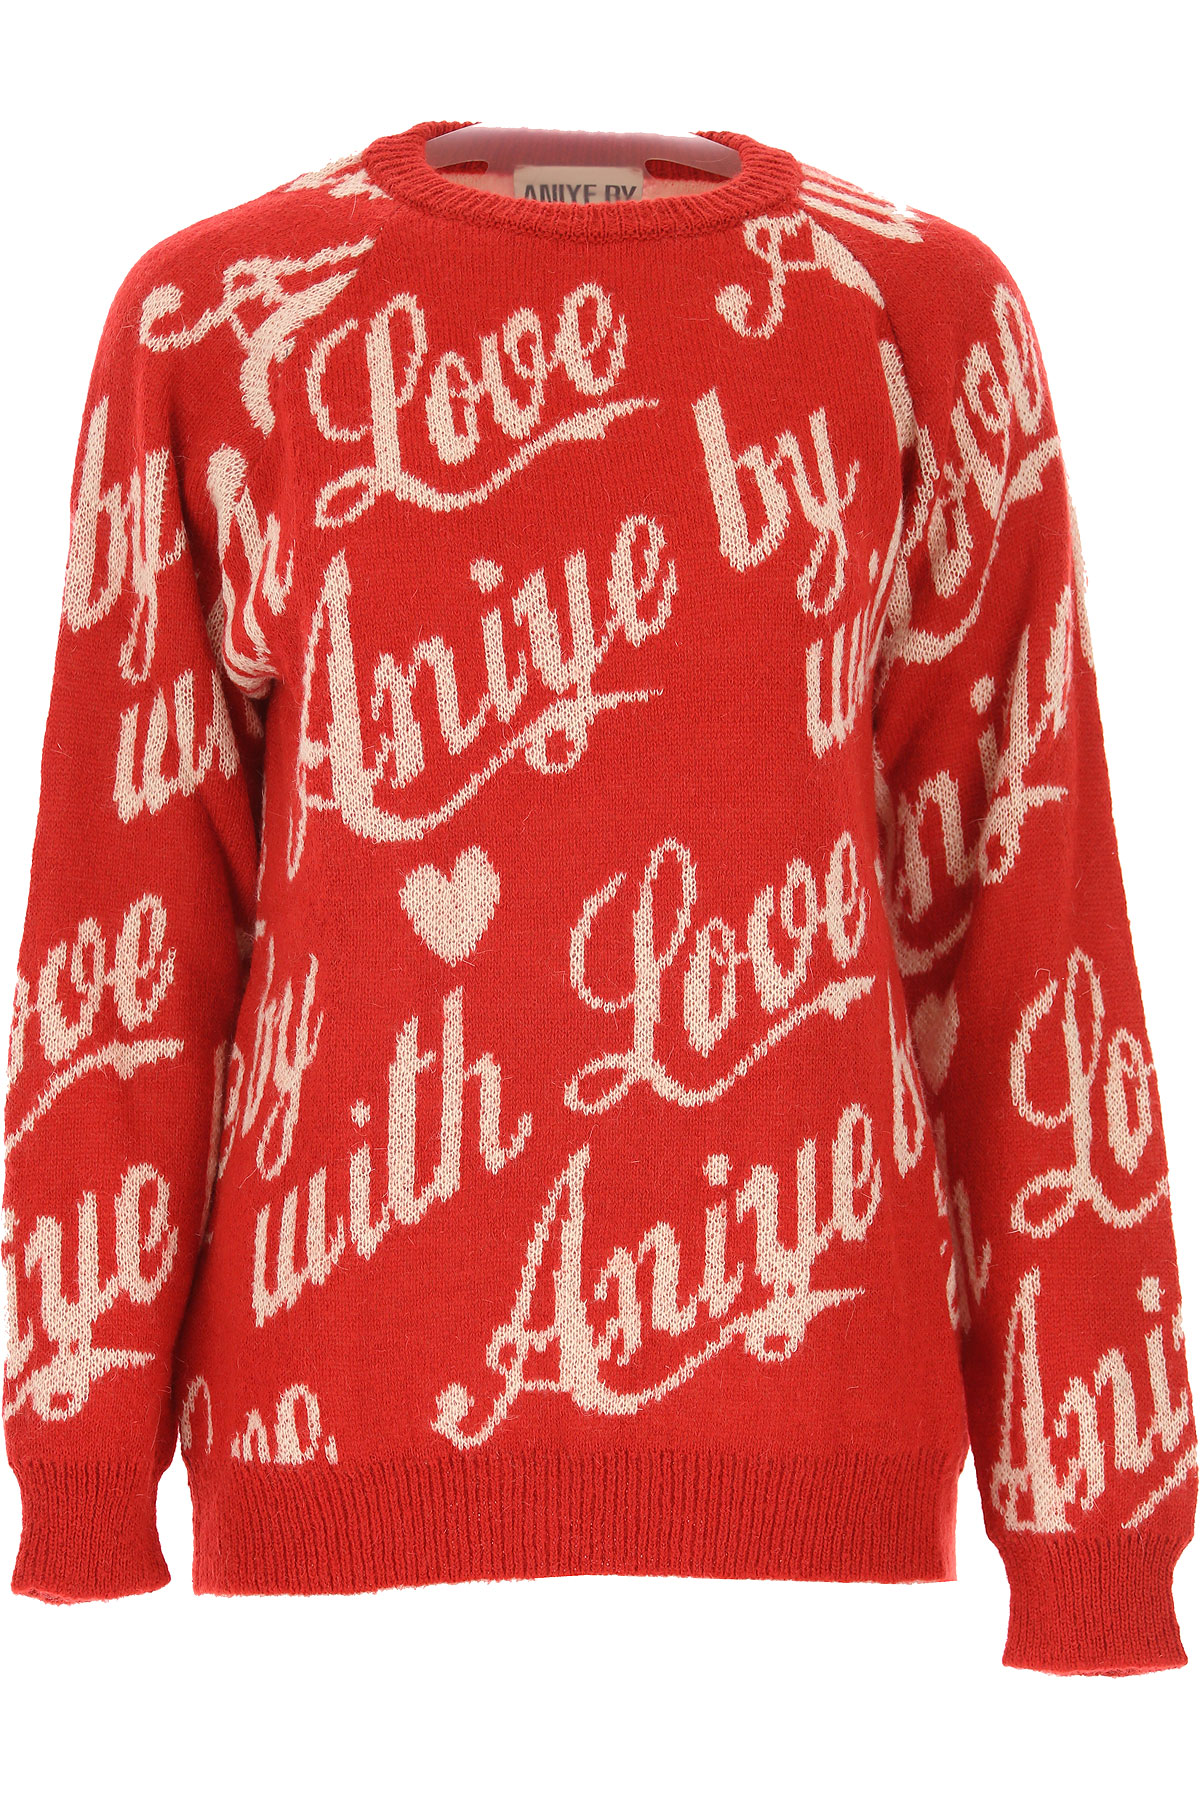 Aniye By Sweater for Women Jumper On Sale, Red, Acrylic, 2019, 2 4